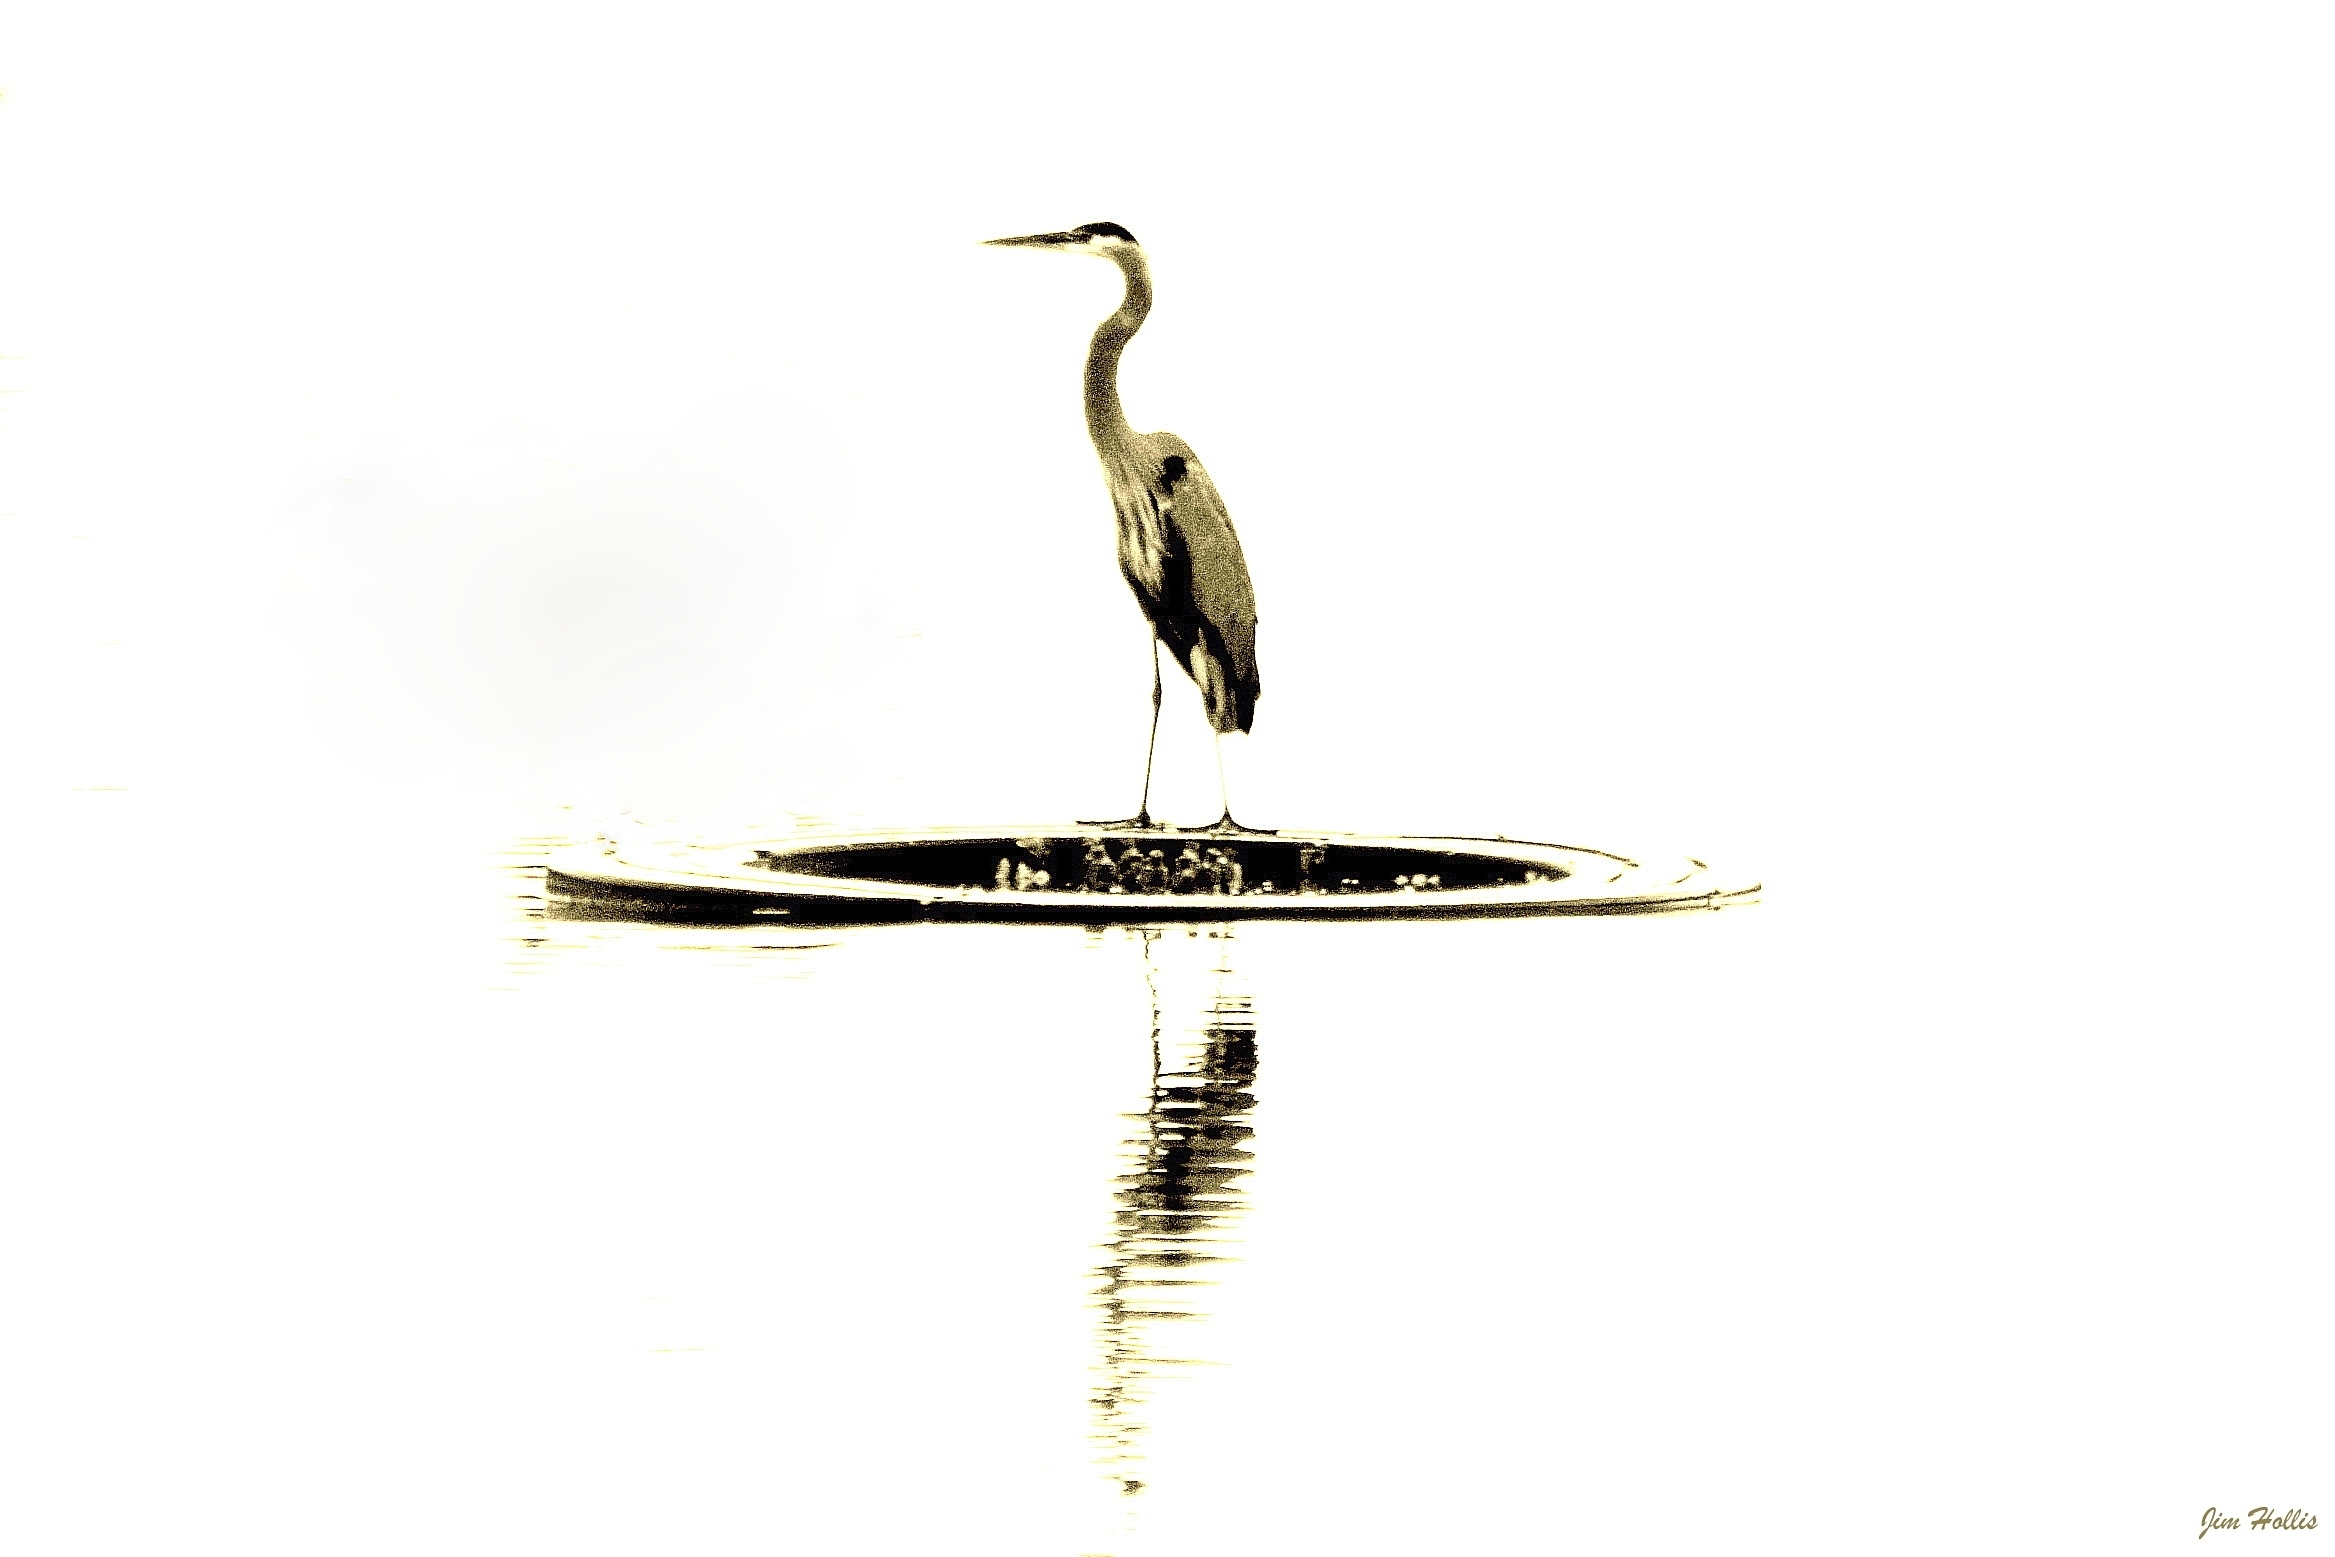 A Great Blue Heron. Image captured at Webster Lake in Northglenn, Colorado. I intentionally over-exposed to get a different effect.